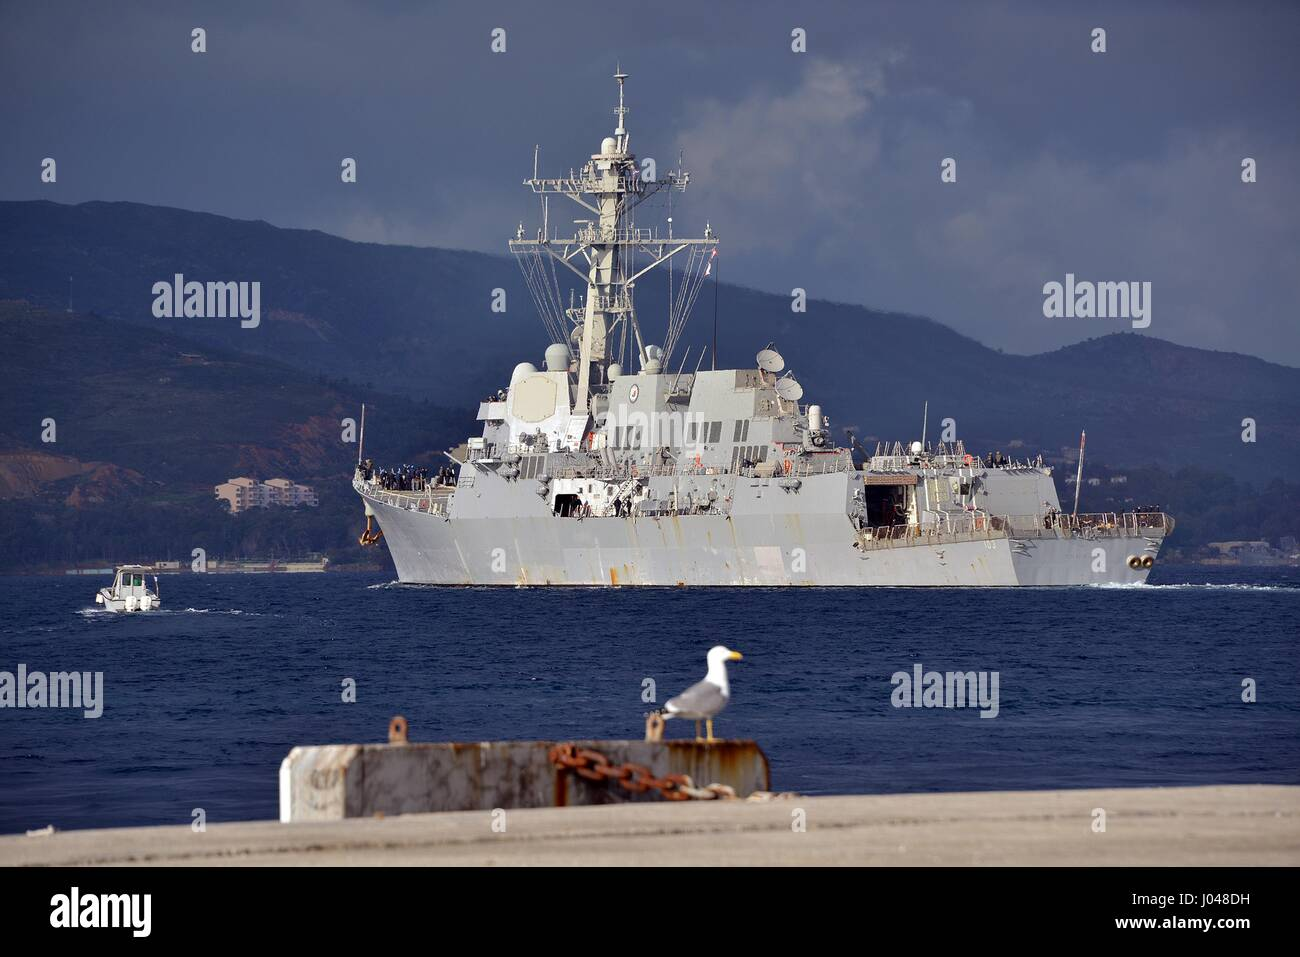 The USN Arleigh Burke-class guided-missile destroyer USS Truxtun departs the Marathi NATO pier facility March 6, - Stock Image